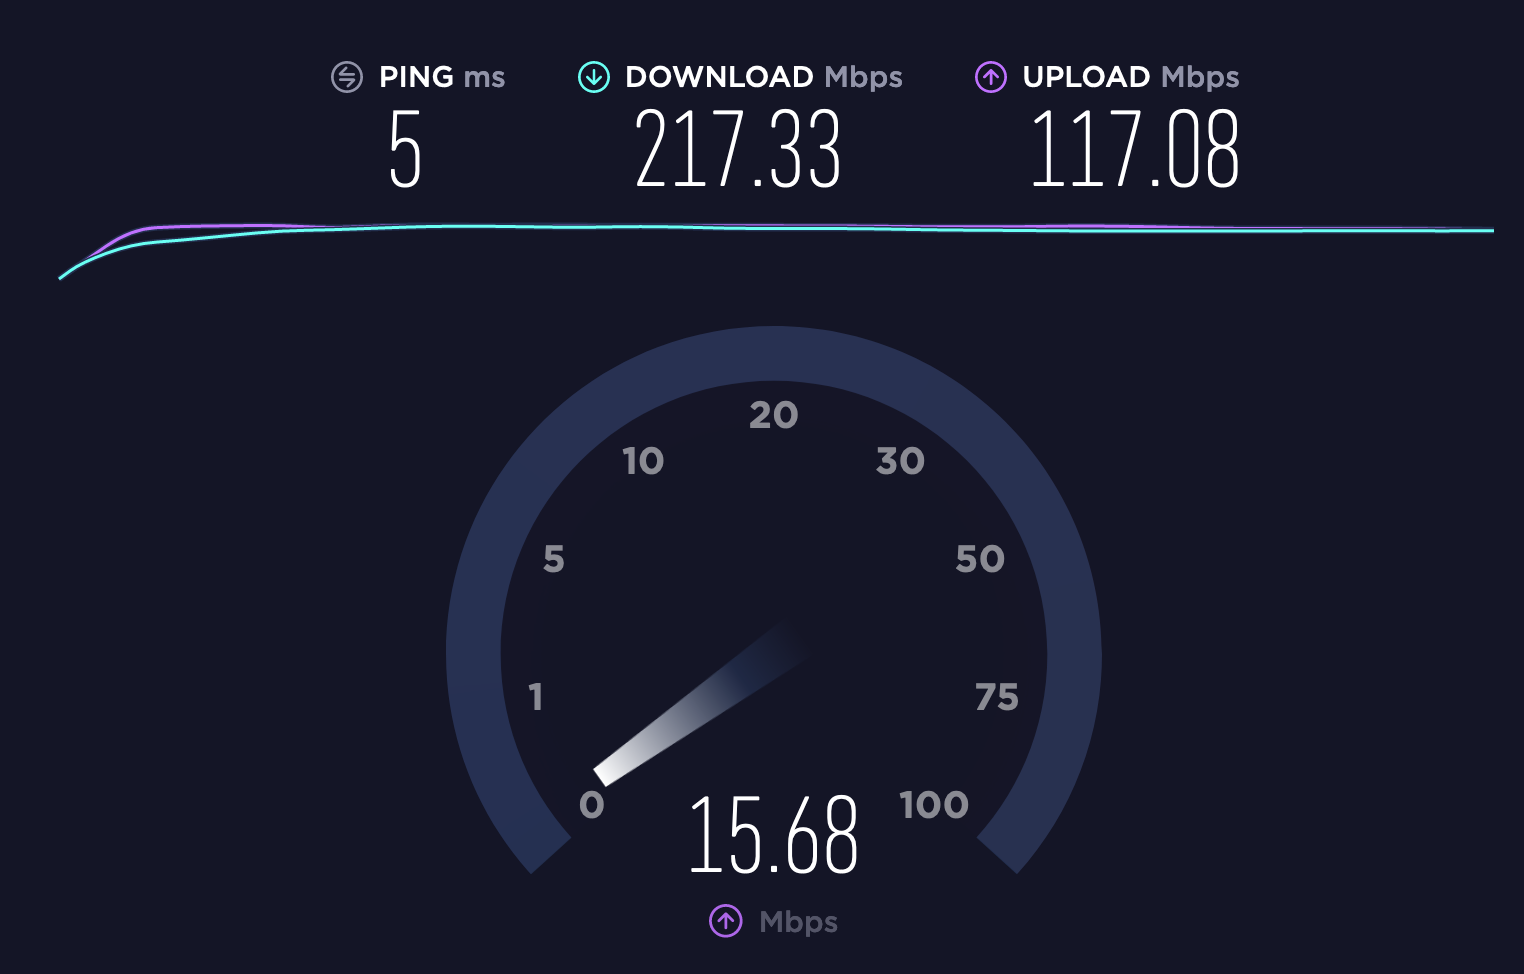 results from speedtest.net for tata sky broadband. Screenshot by Amar Vyas